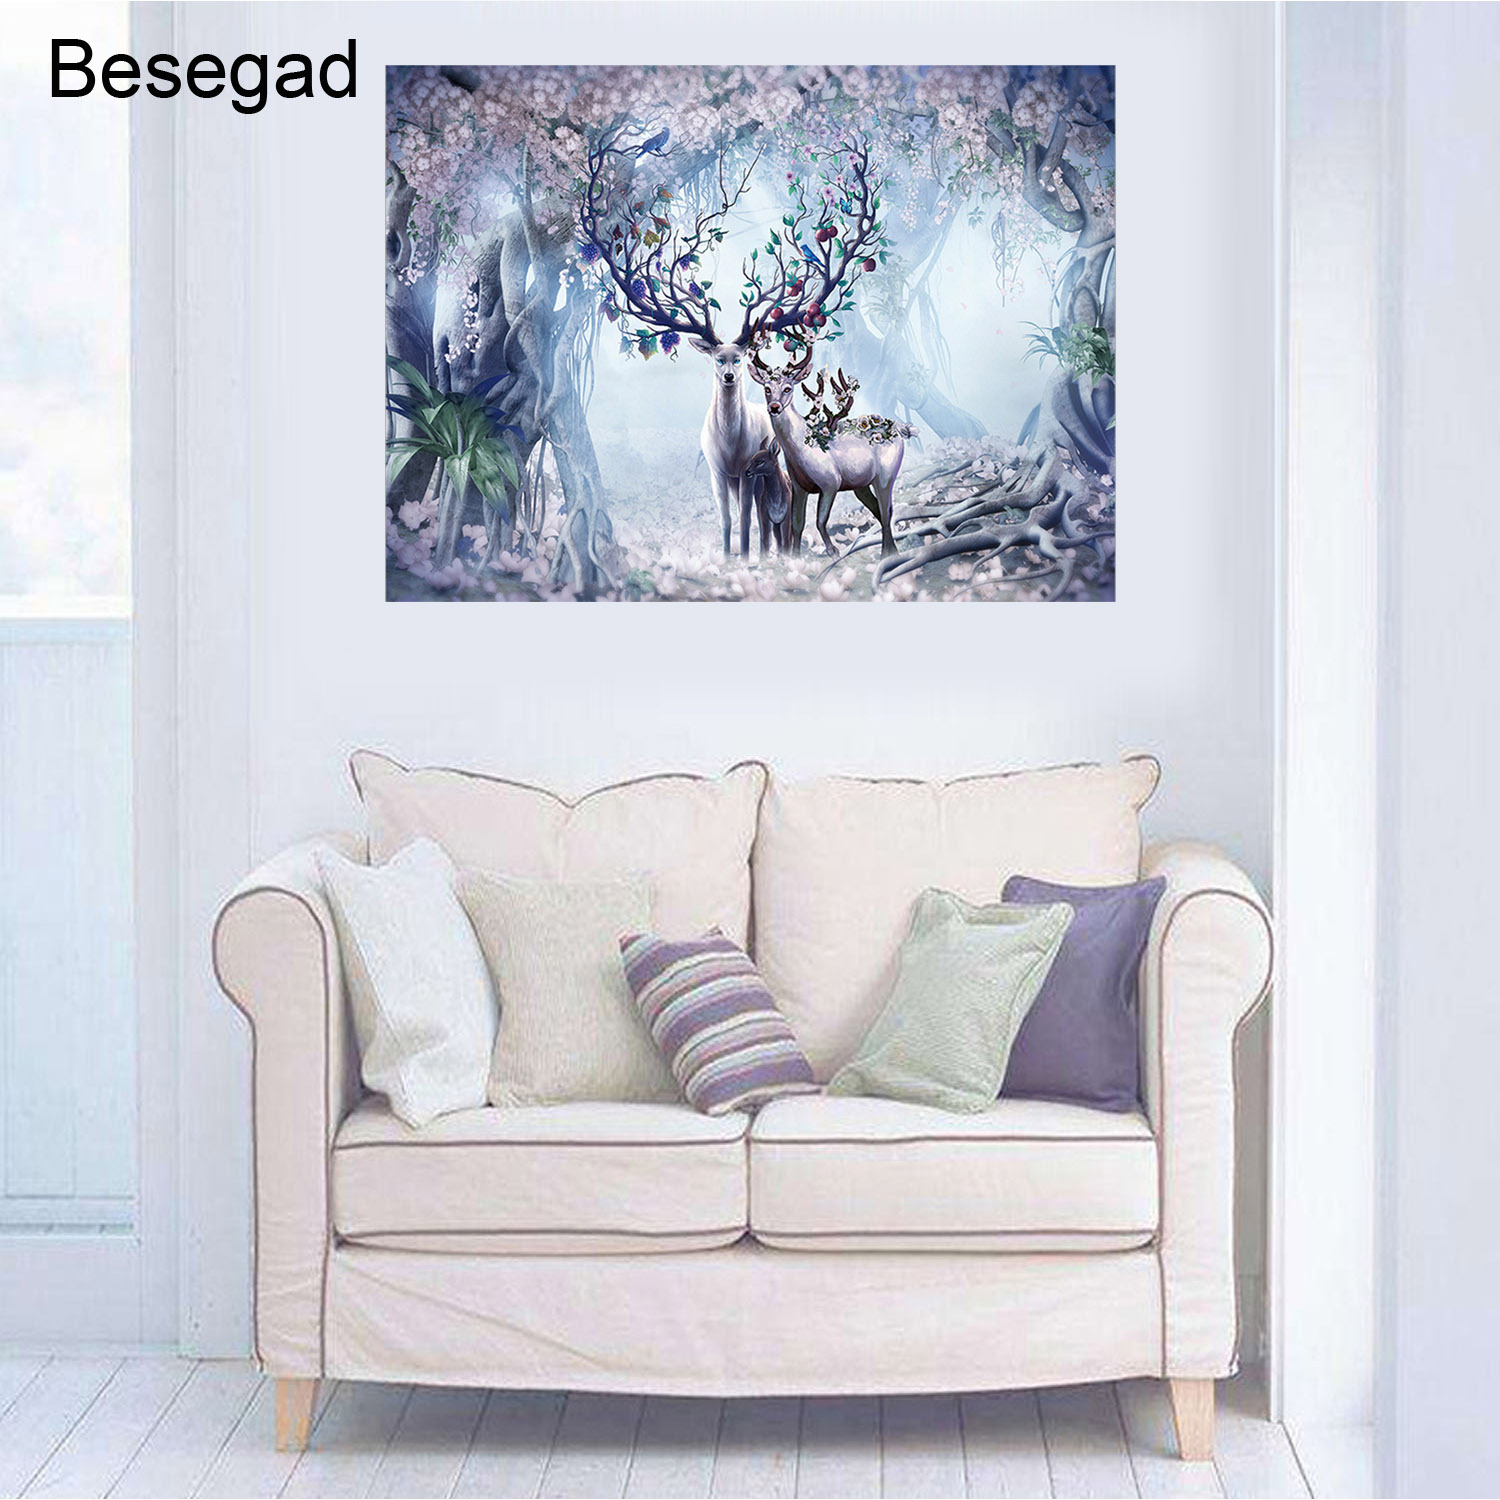 Besegad <font><b>500</b></font> <font><b>Pieces</b></font> Wood Elk <font><b>Jigsaw</b></font> <font><b>Puzzle</b></font> Toy Set For Kids Development Education Toy Develop Patience Focus Children <font><b>Puzzle</b></font> Gift image